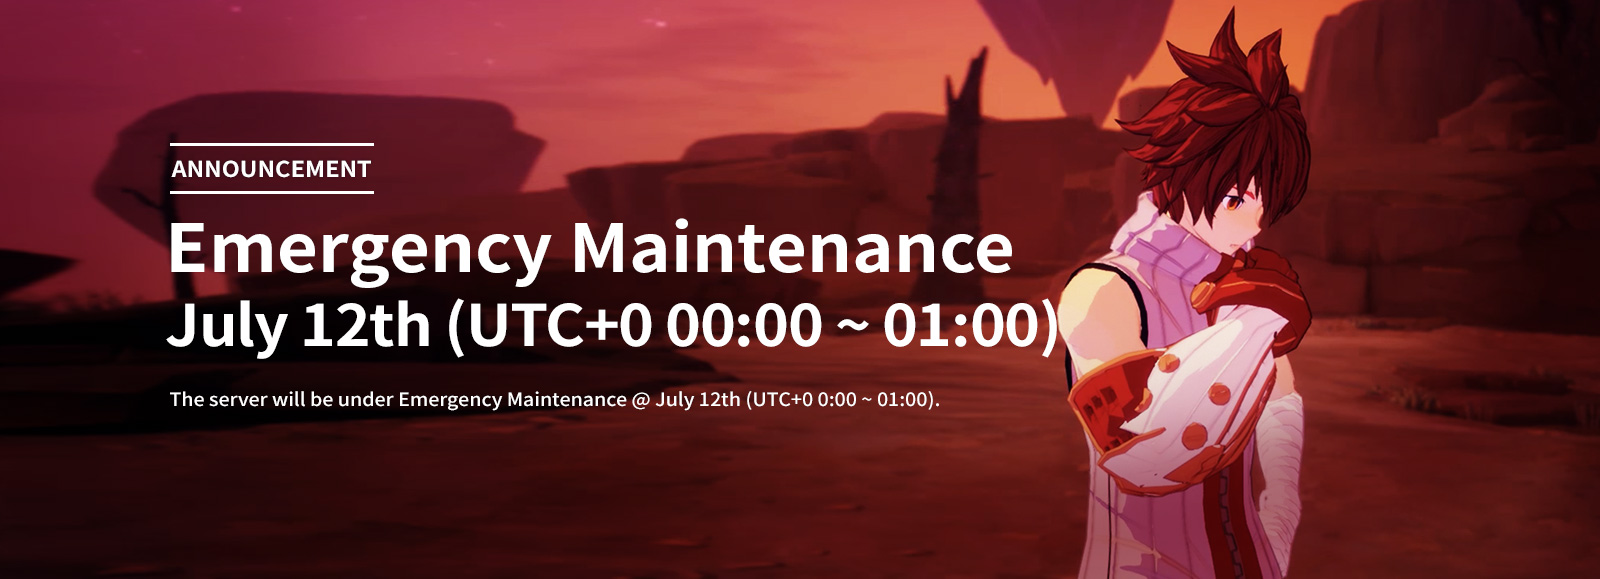 July 12th Emergency Maintenance Announcement